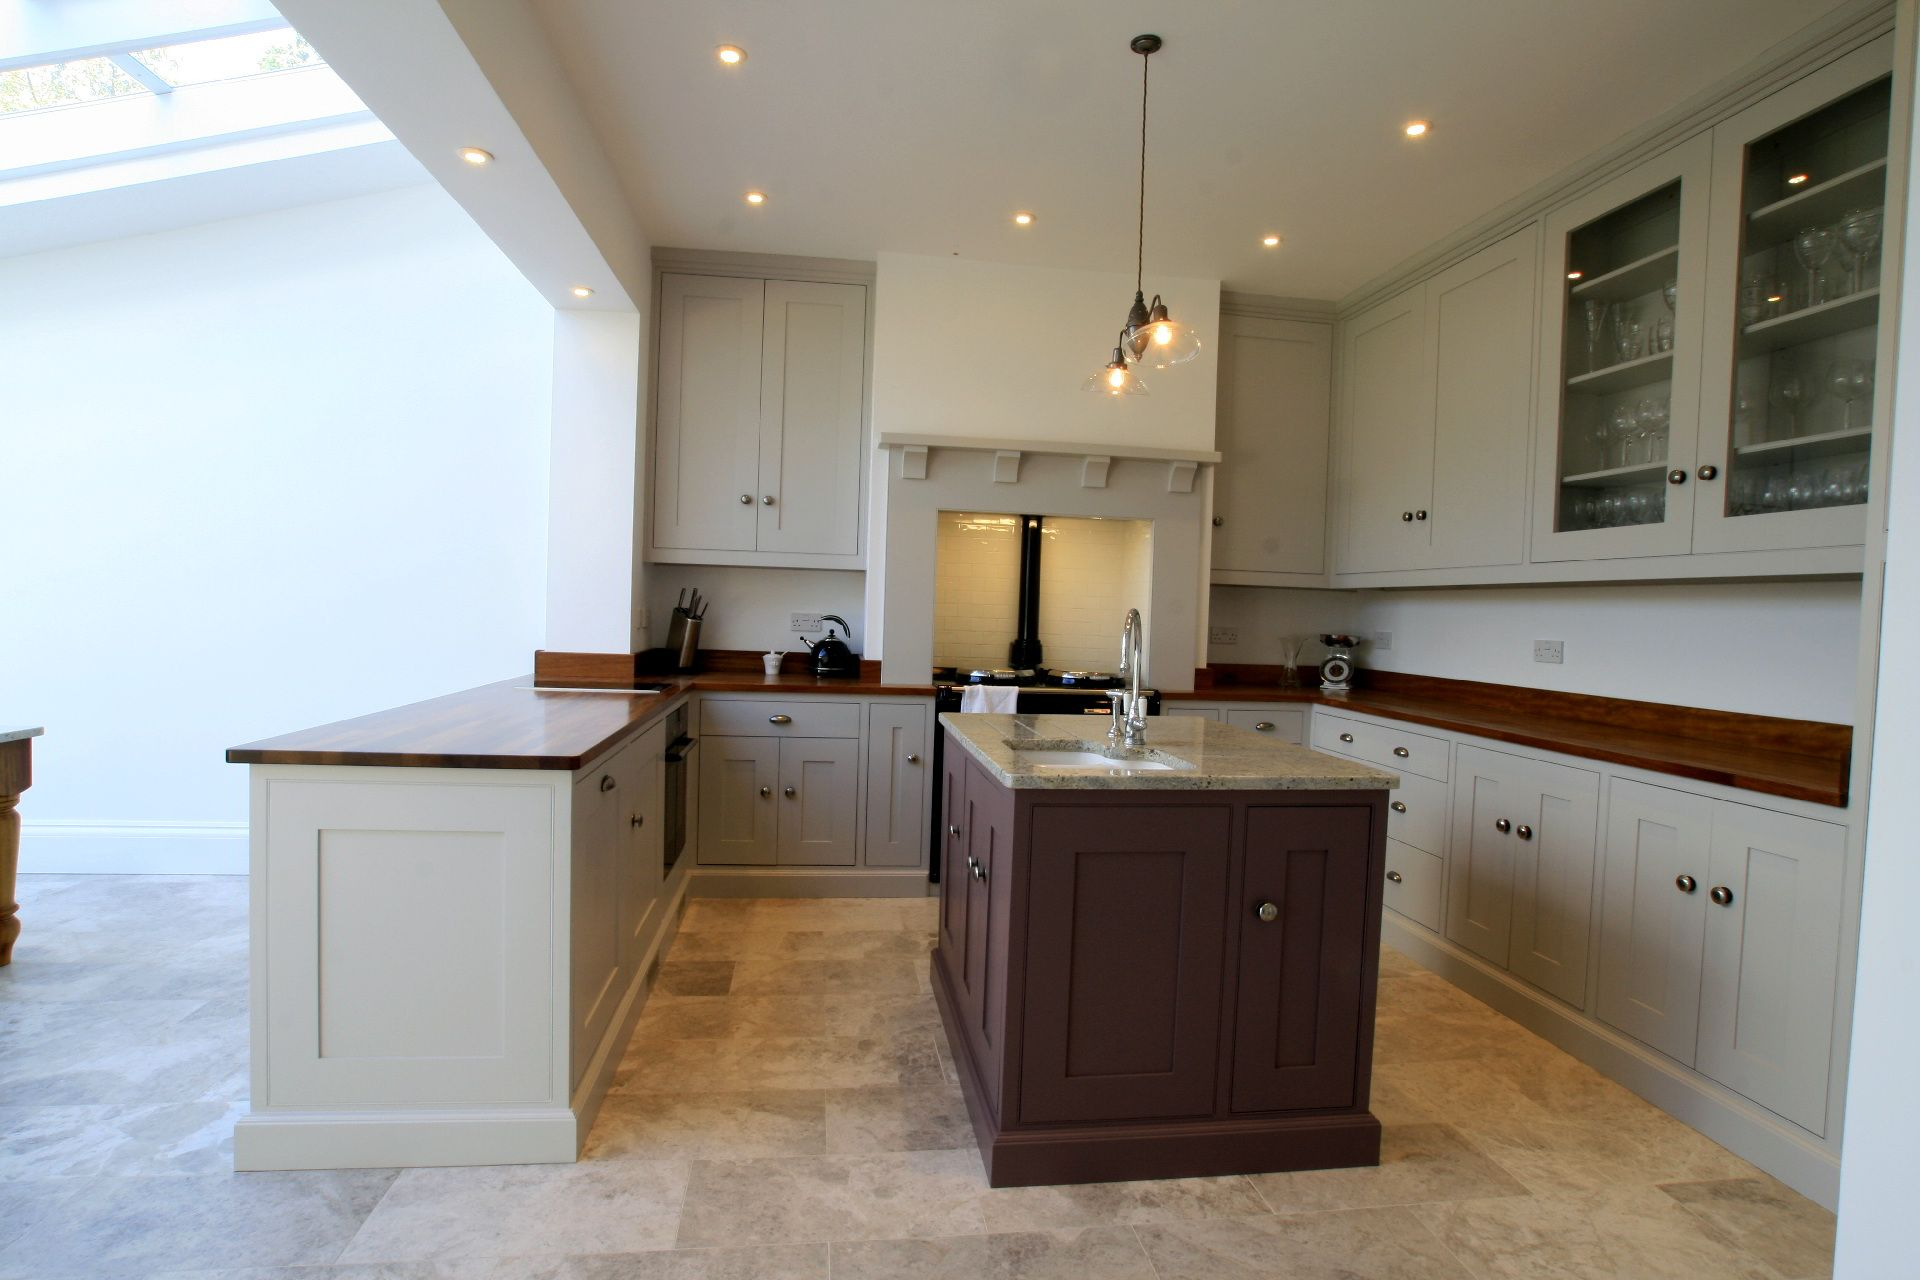 Shallow depth cupboards in front of chimney breast